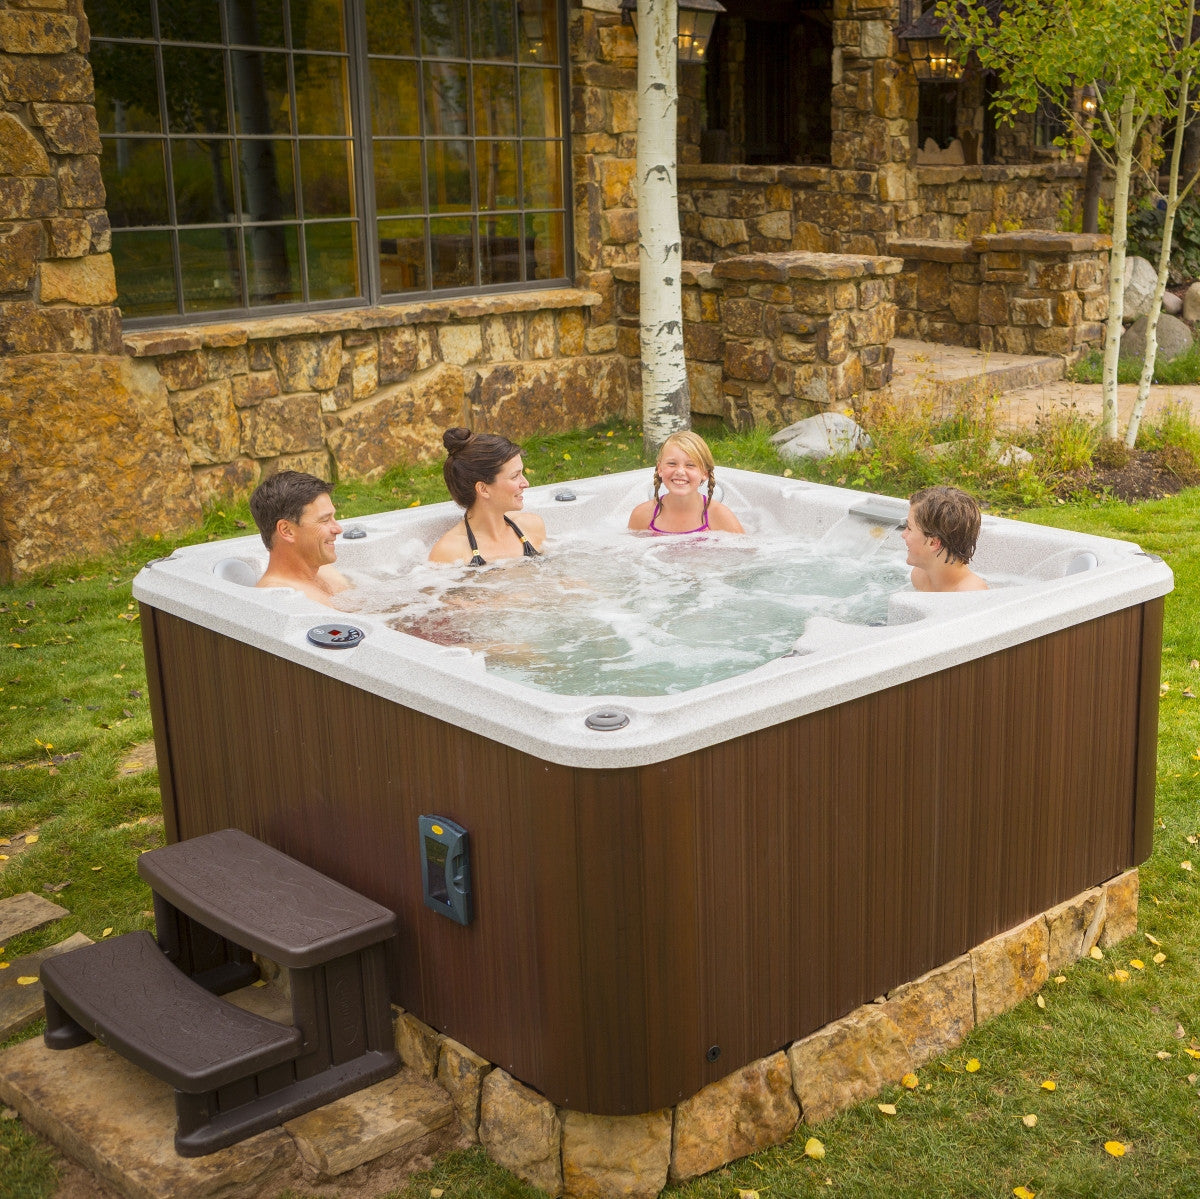 Jacuzzi J235 Hot Tub | Outdoor Living